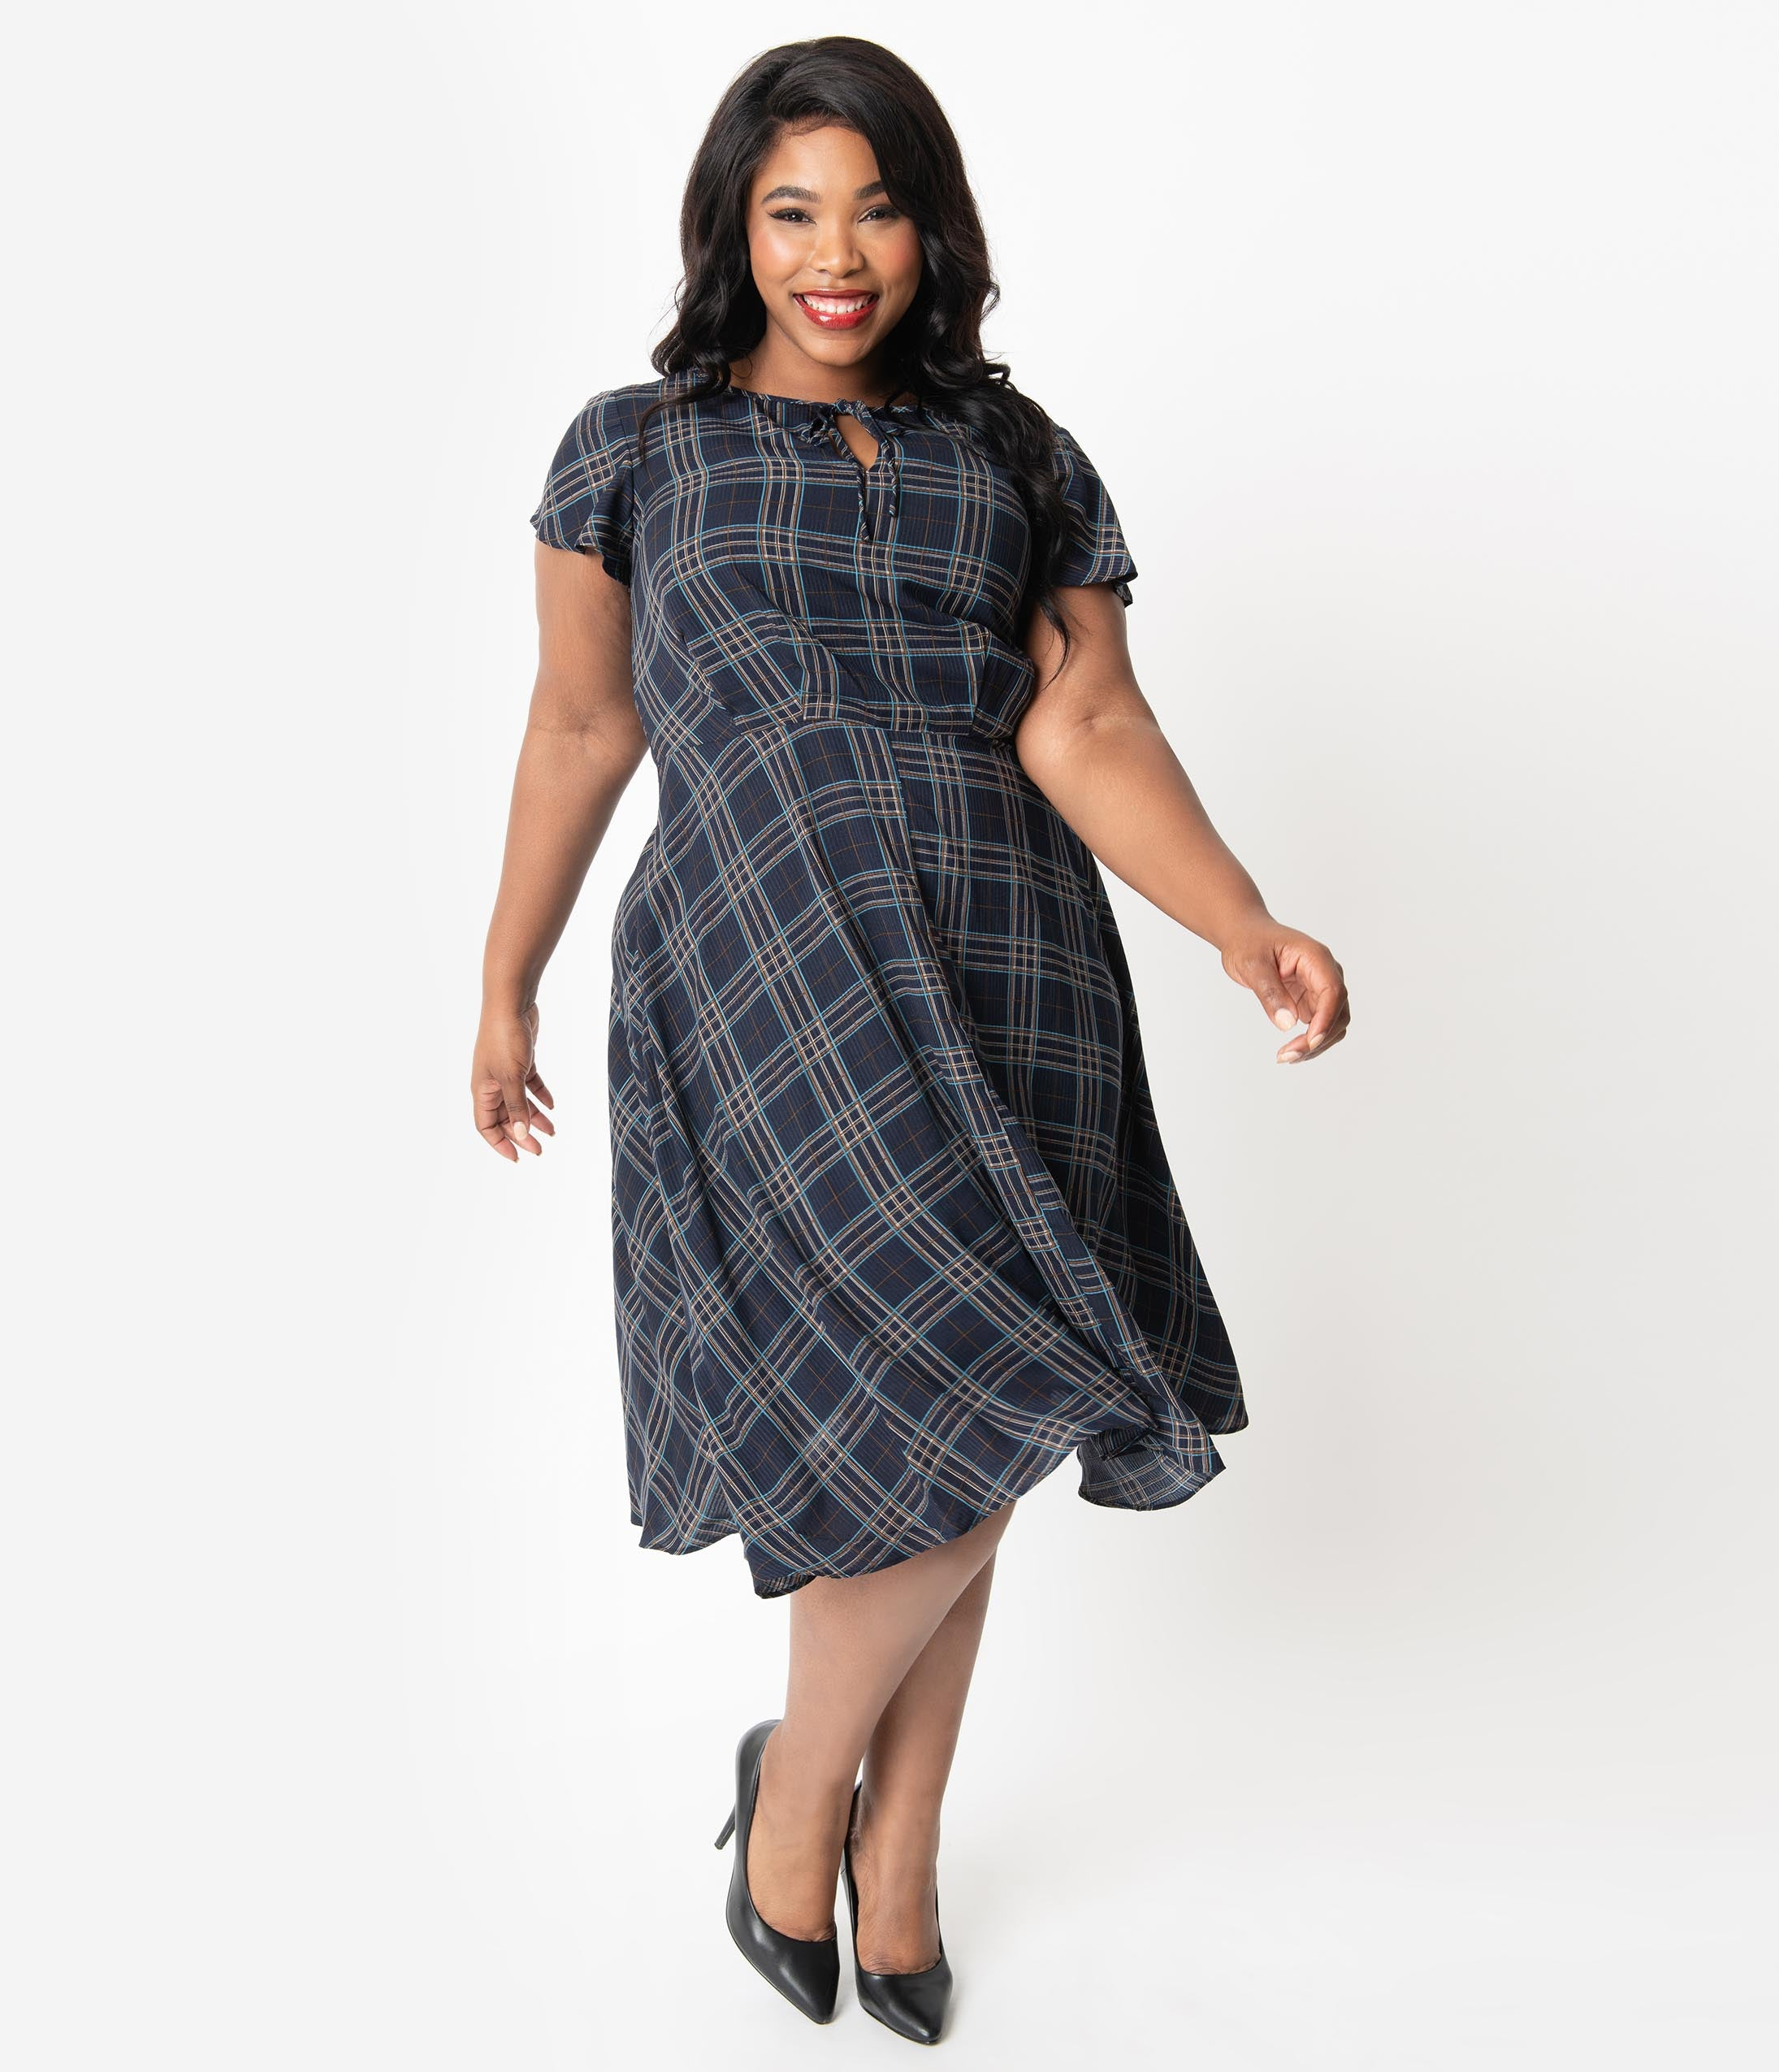 500 Vintage Style Dresses for Sale | Vintage Inspired Dresses Unique Vintage Plus Size 1940S Style Blue Plaid Formosa Swing Dress $78.00 AT vintagedancer.com